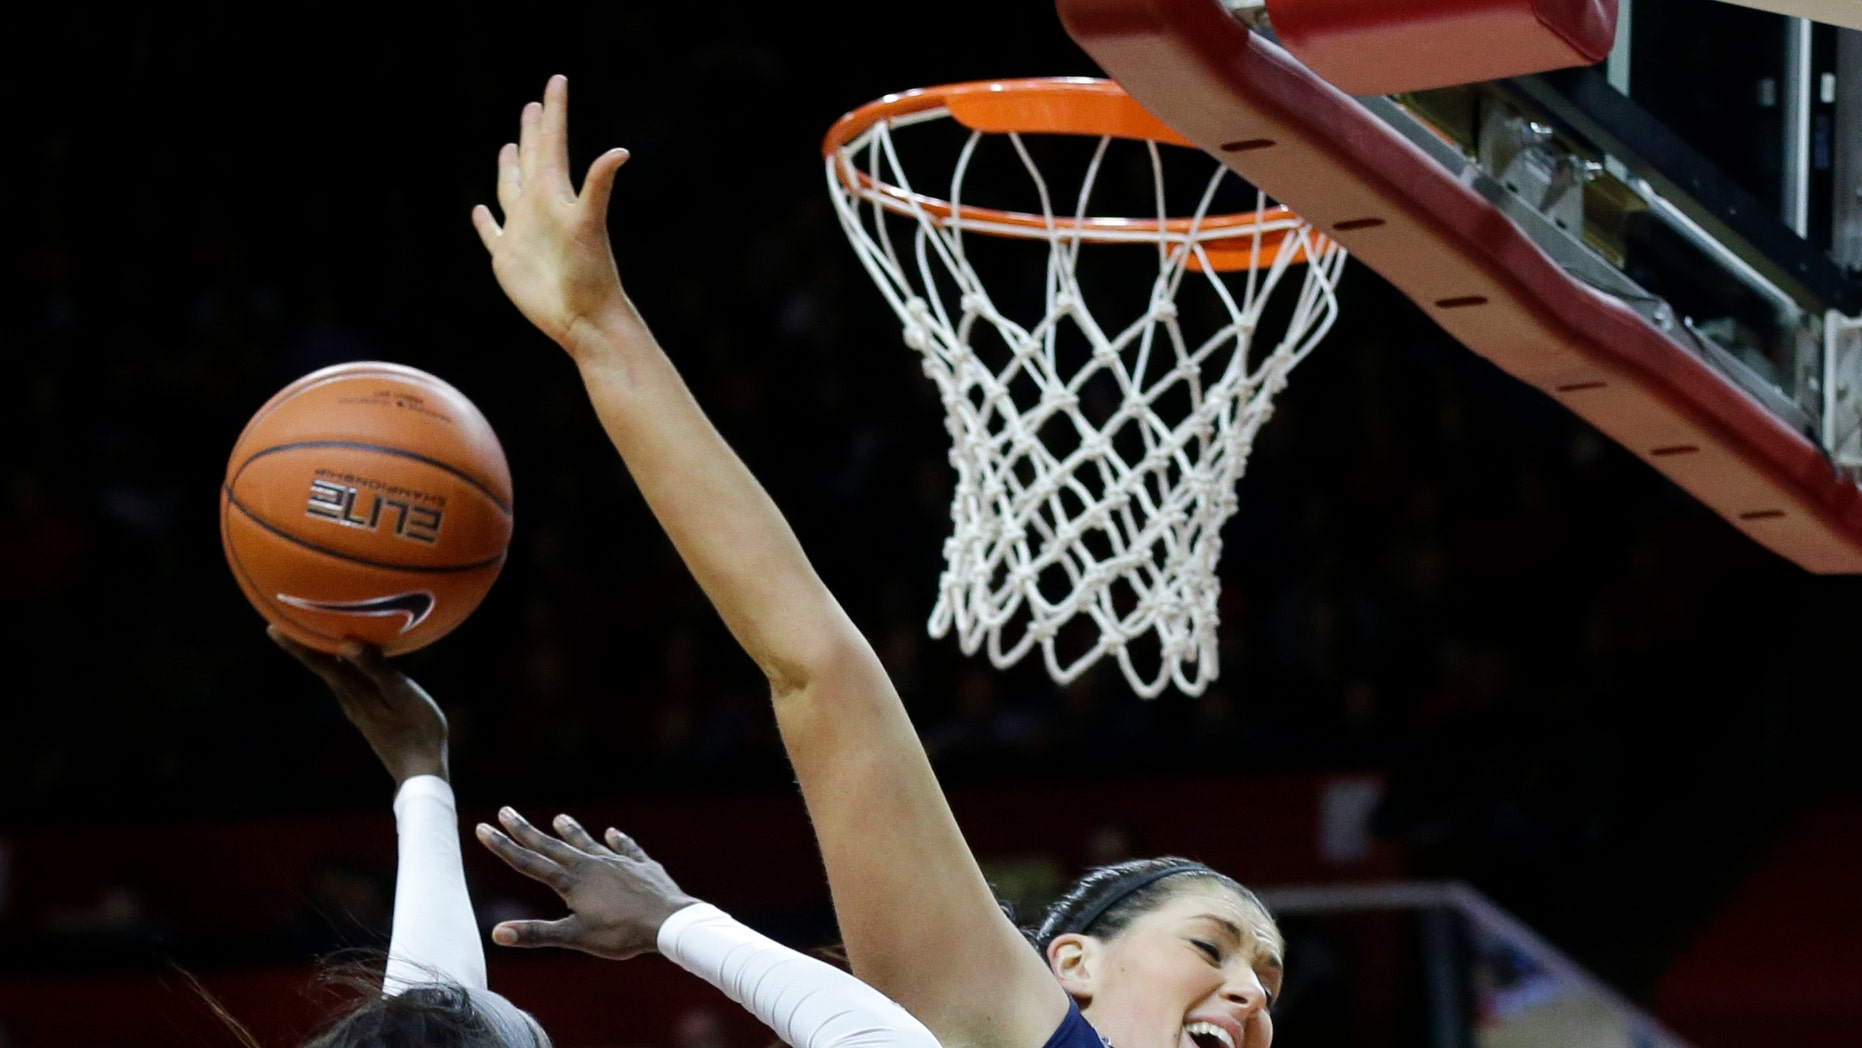 Connecticut center Stefanie Dolson (31) tries to block a shot by Rutgers forward Kahleah Copper (2) during the first half of an NCAA women's college basketball game, Sunday, Jan. 19, 2014, in Piscataway, N.J. Connecticut won 94-64. (AP Photo/Mel Evans)